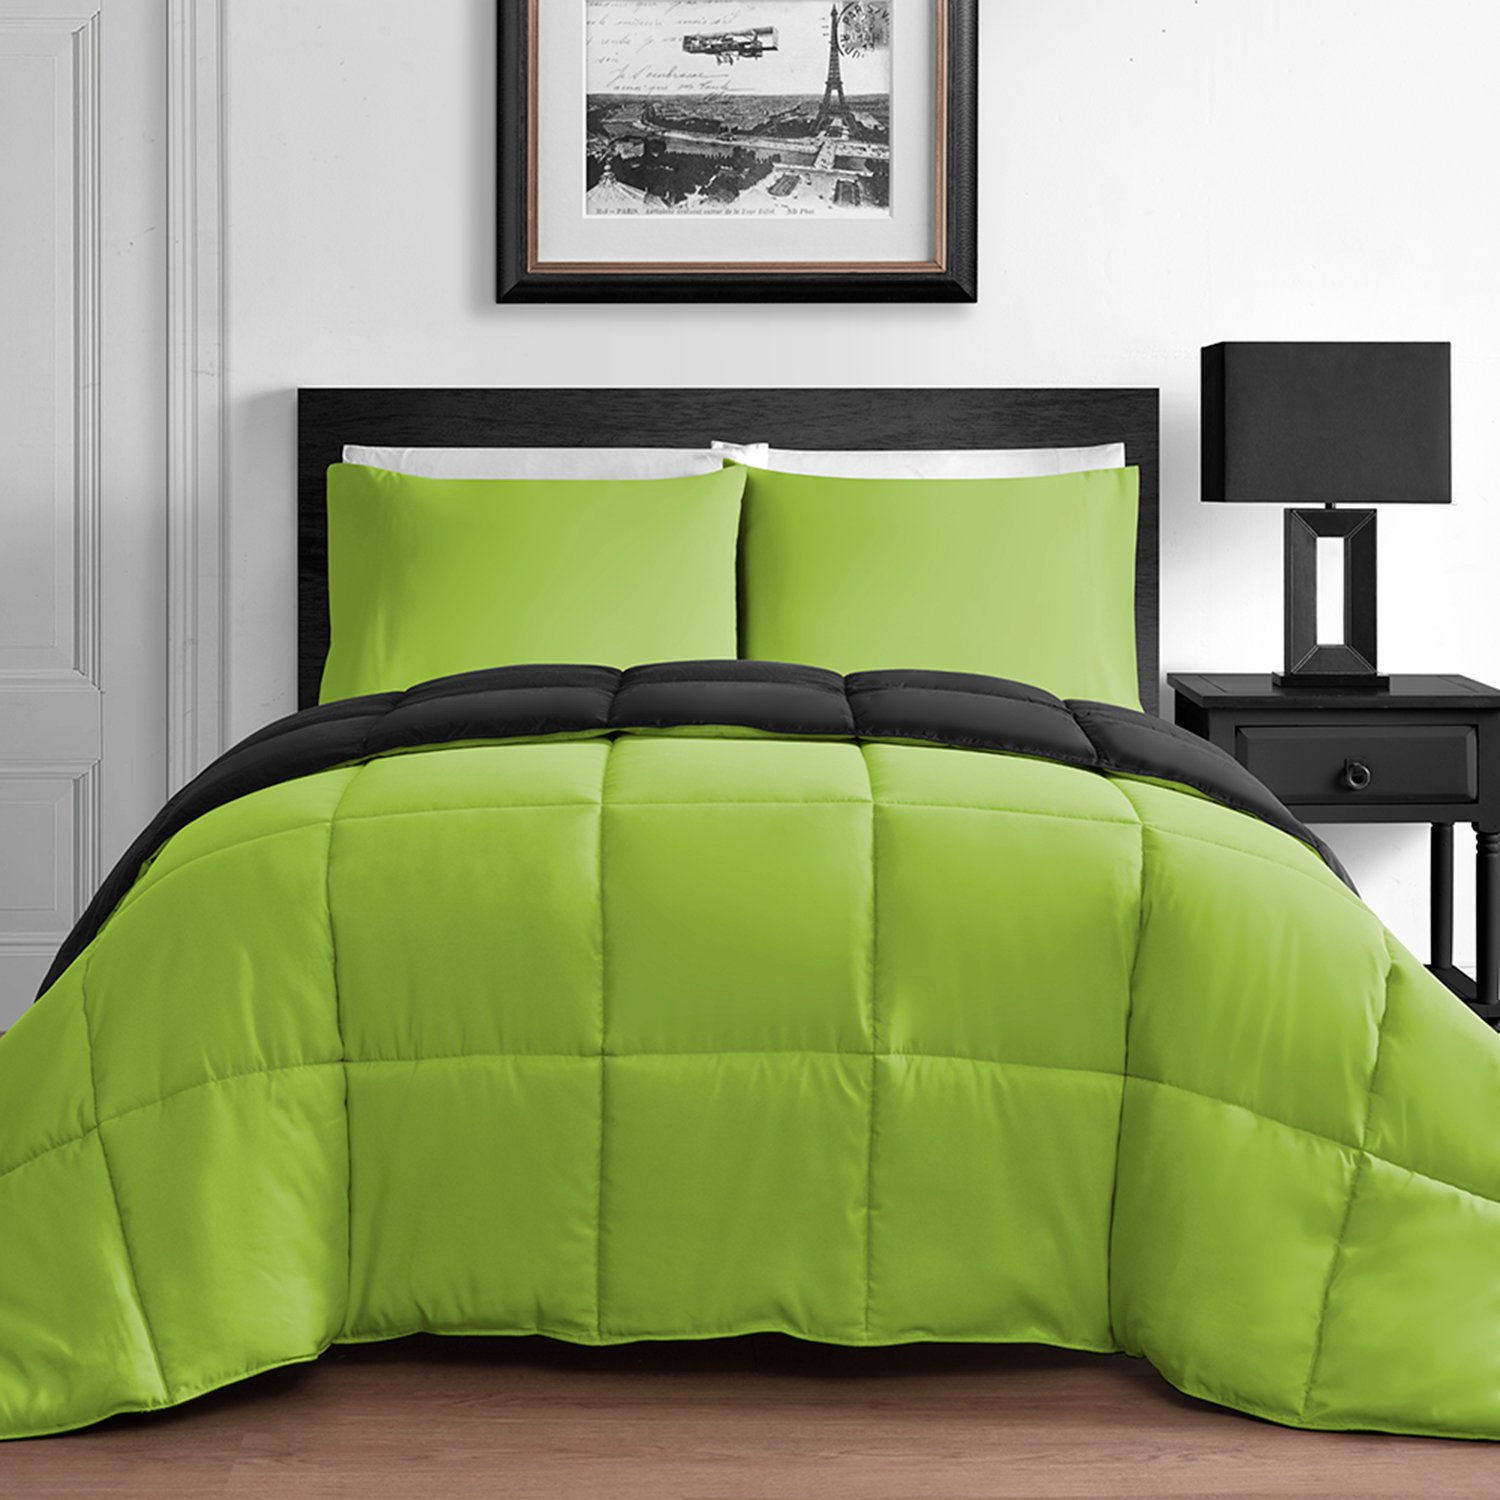 Reversible comforter sets ease bedding with style Green and black bedroom